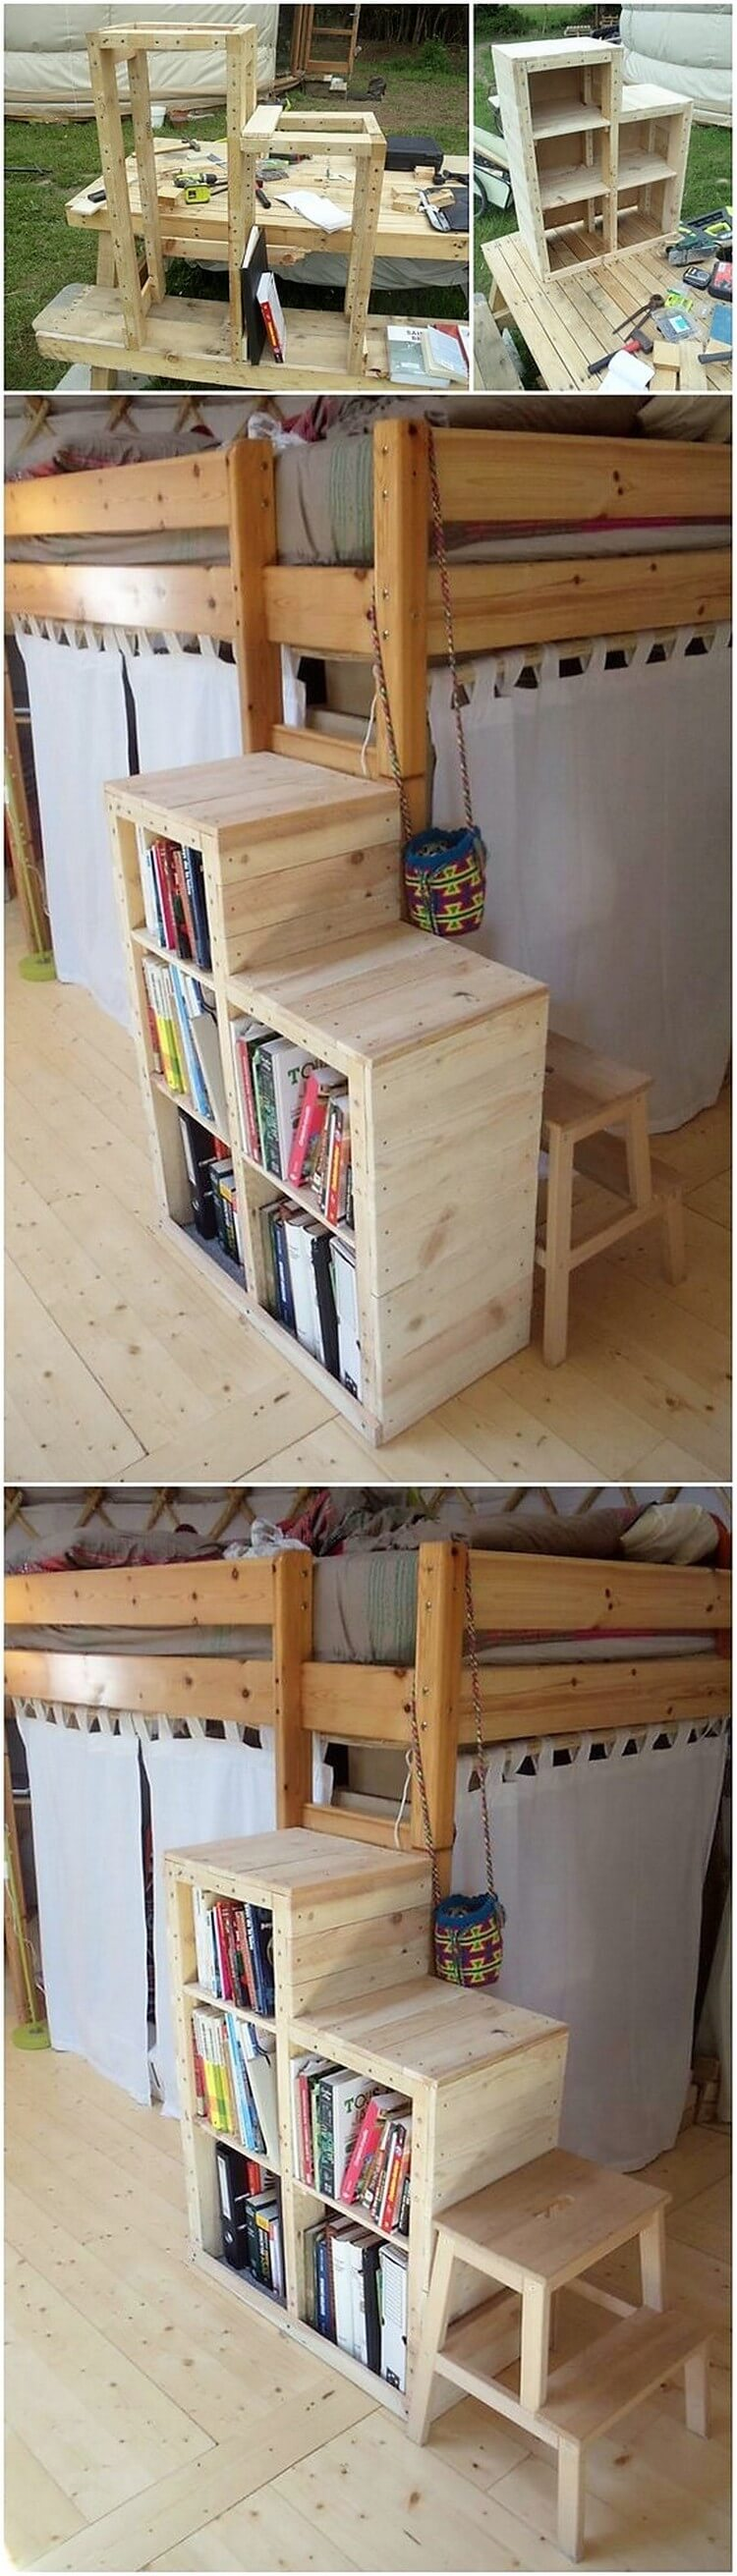 Pallet Bookshelf Stairs